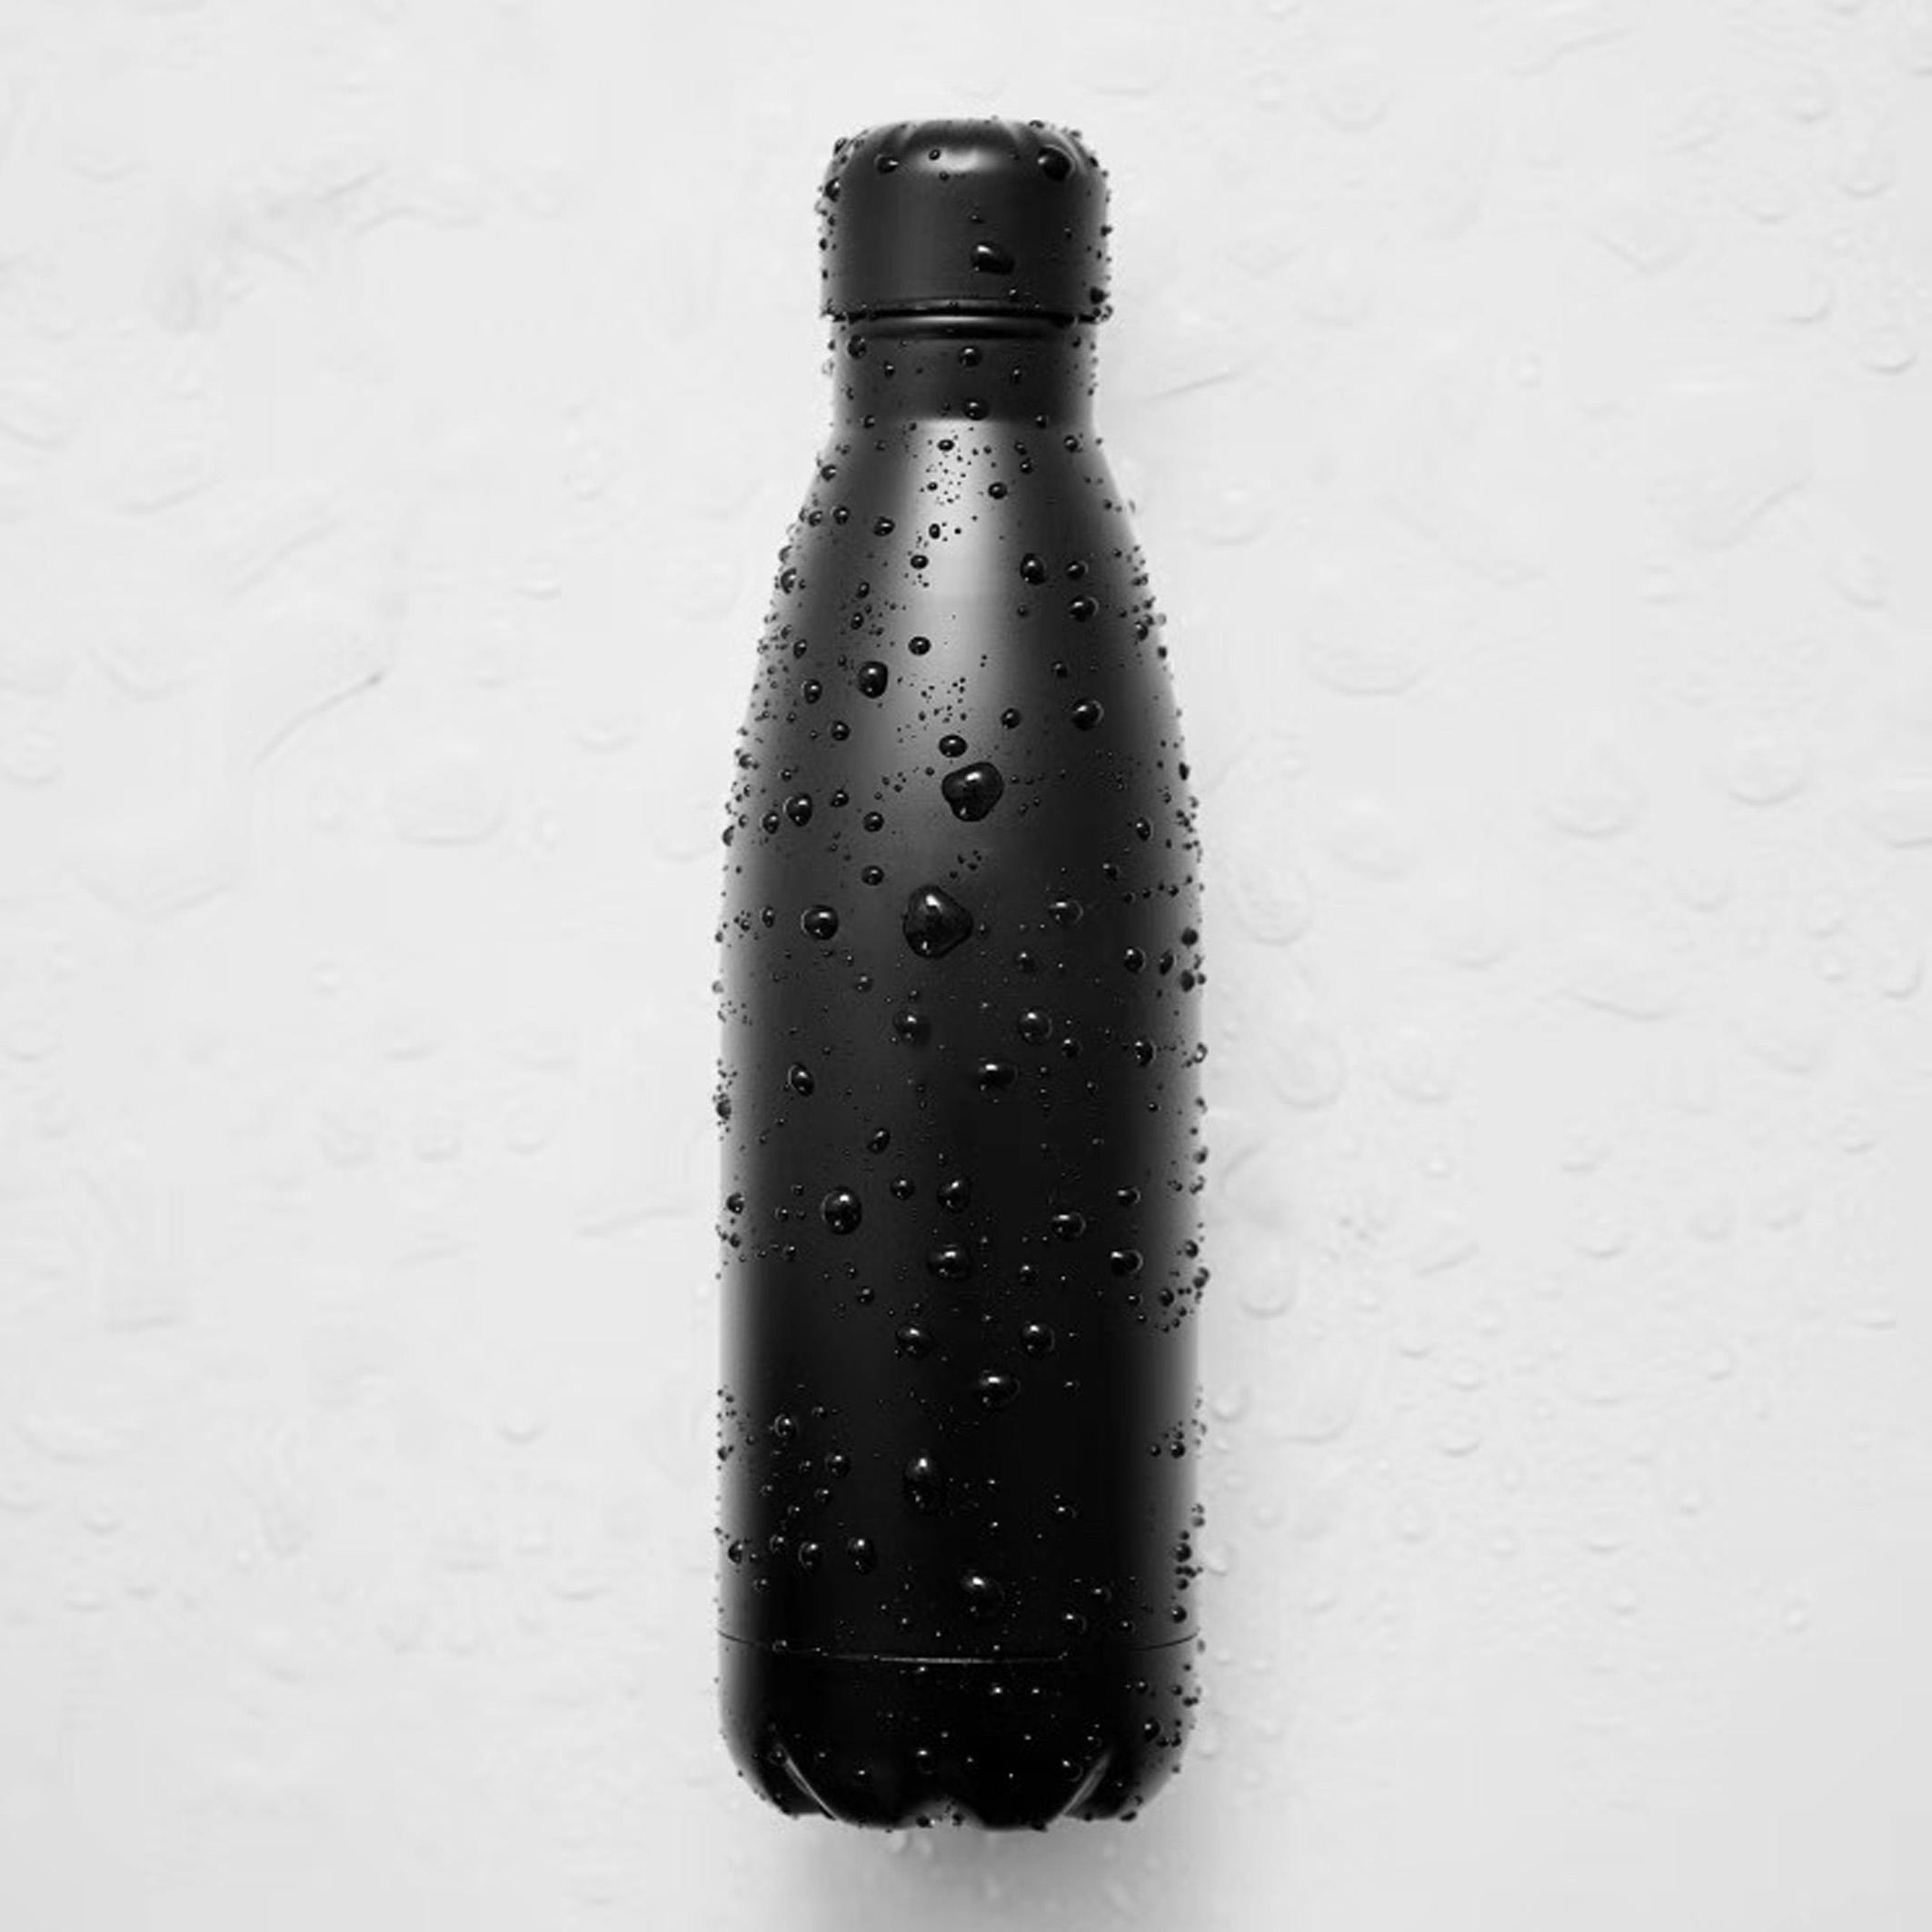 500 Ml Cola Bentuk Double Berdinding Stainless Steel Matte Hitam Botol Air